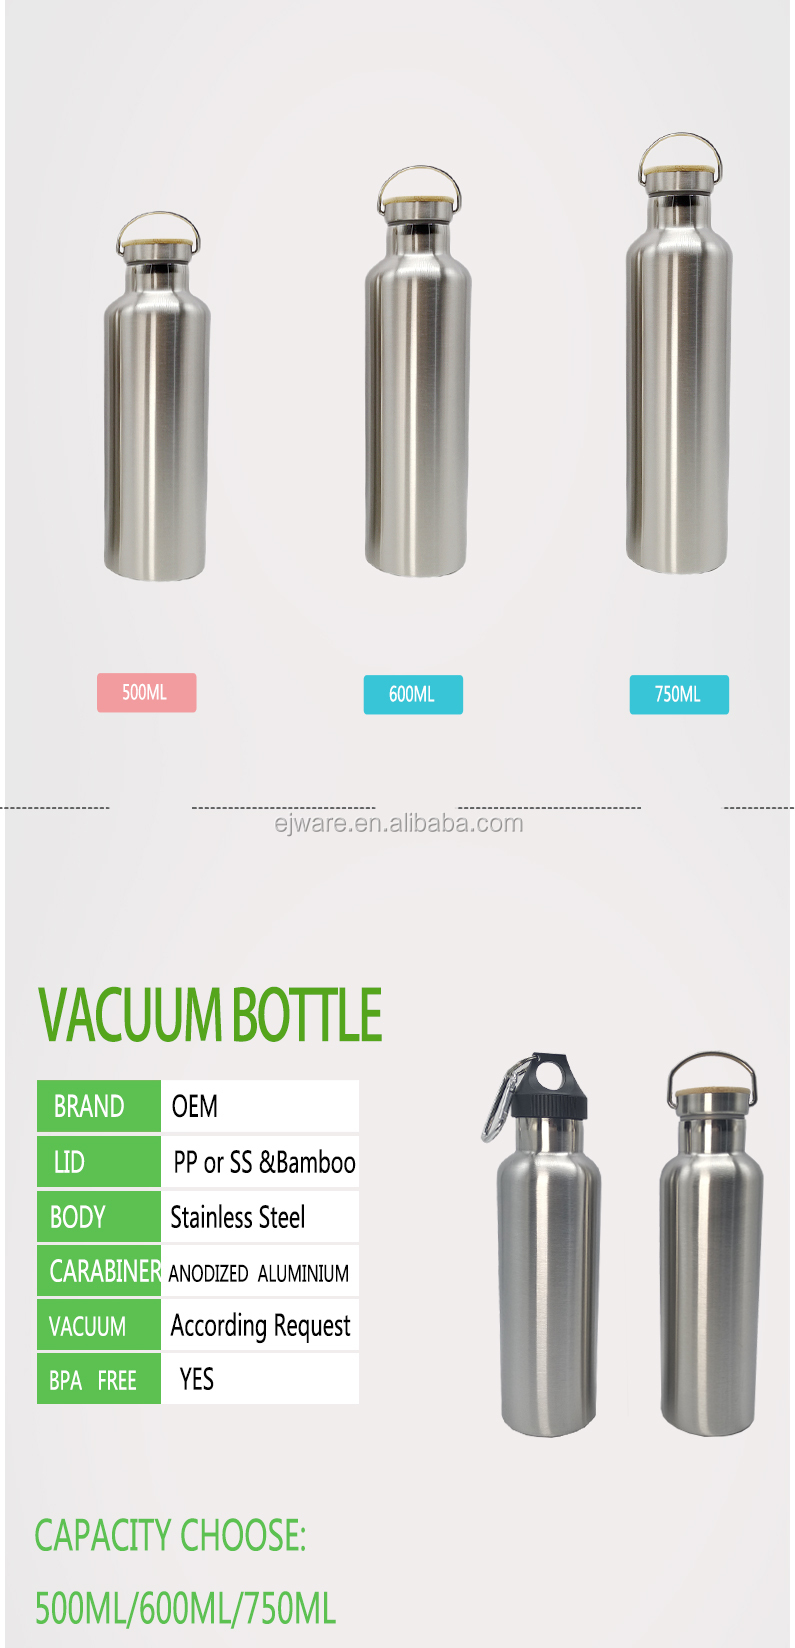 Fda Lfgb Wholesale Double Wall Stainless Steel Water Bottle/ Vaccum Flask/Tea Infuser Stainless Steel